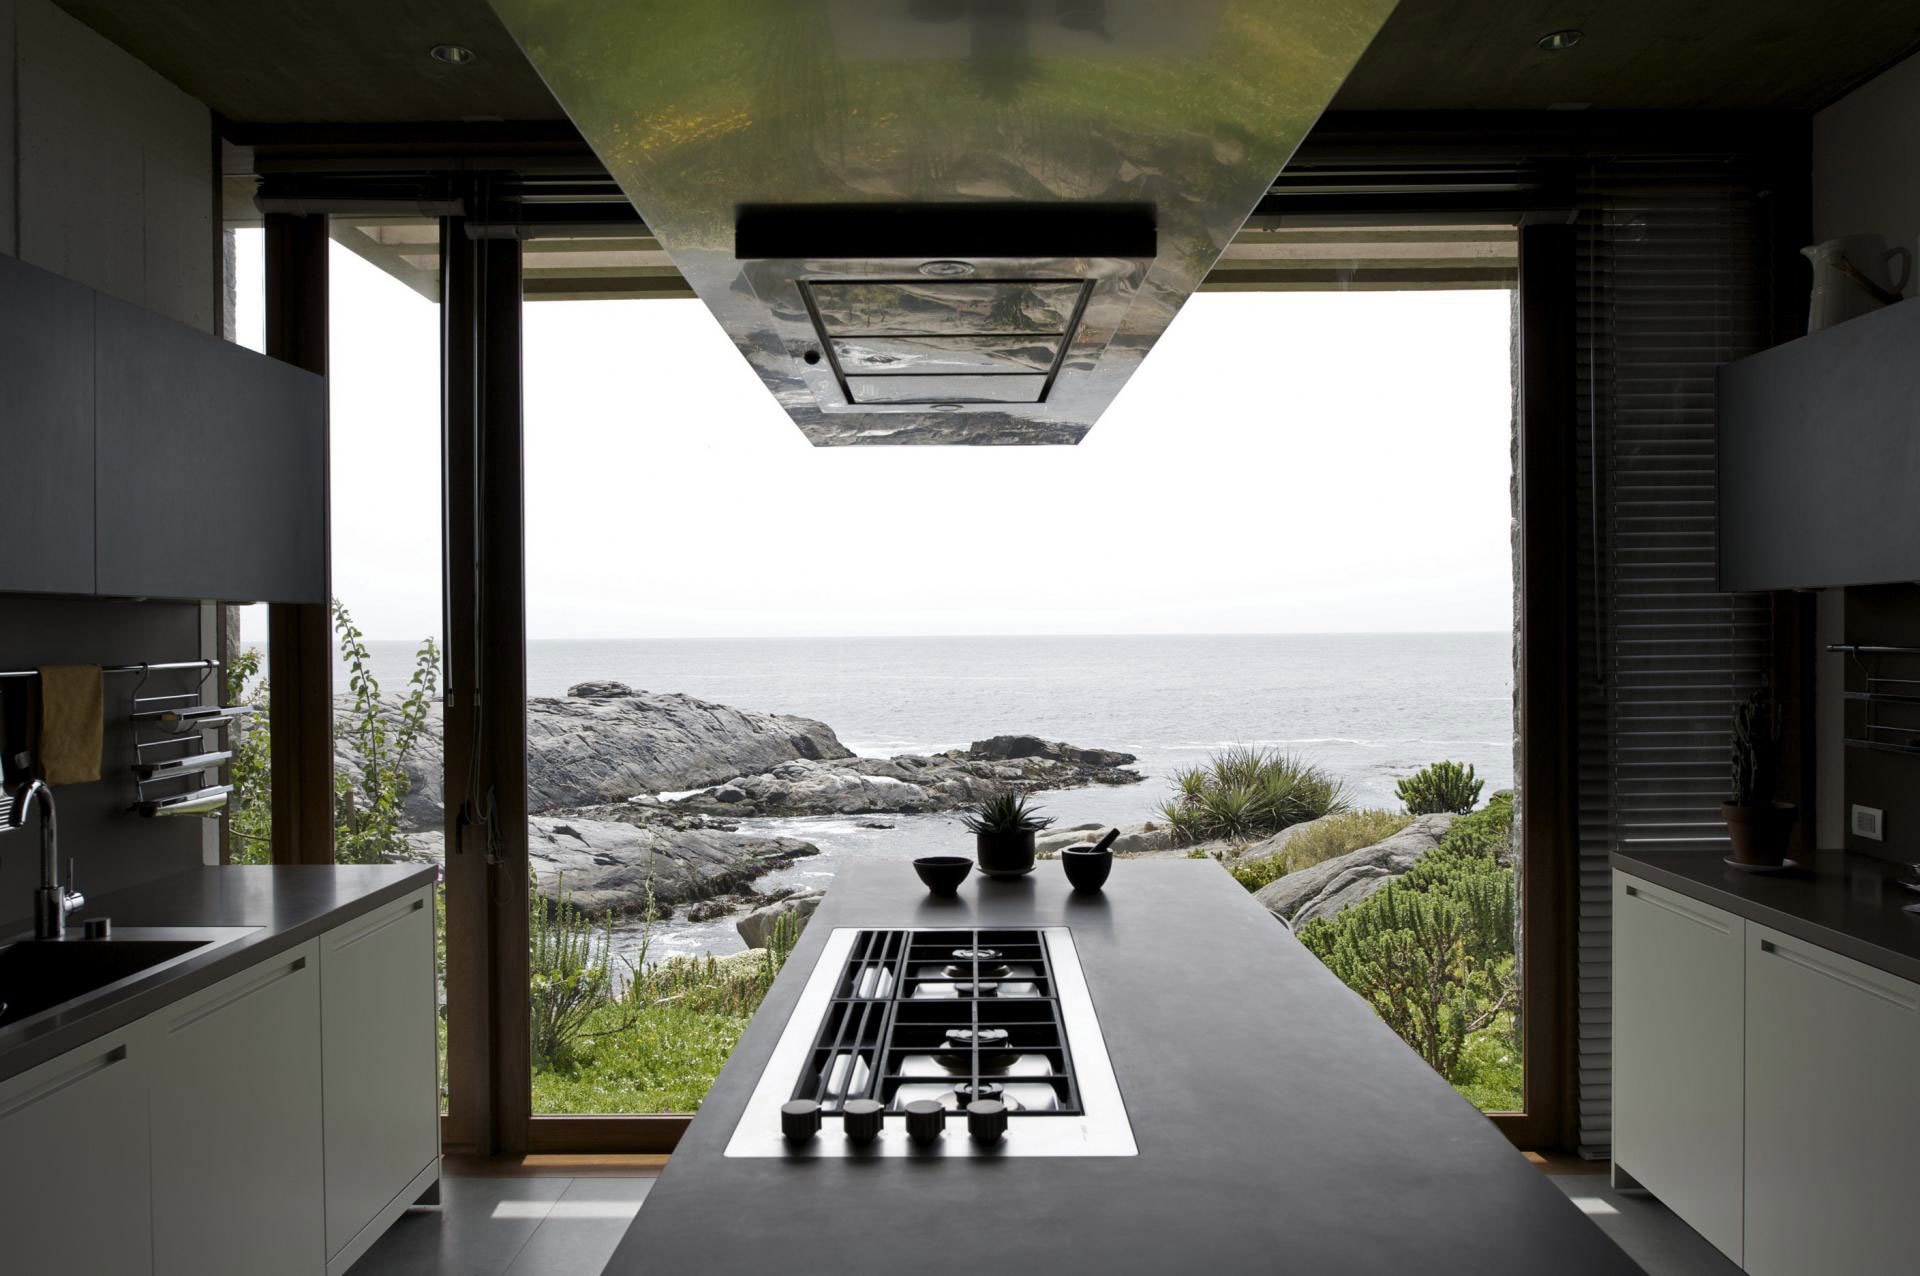 Kitchen Island Glass Wall, Oceanfront Holiday Houses in Punta Pite, Chile